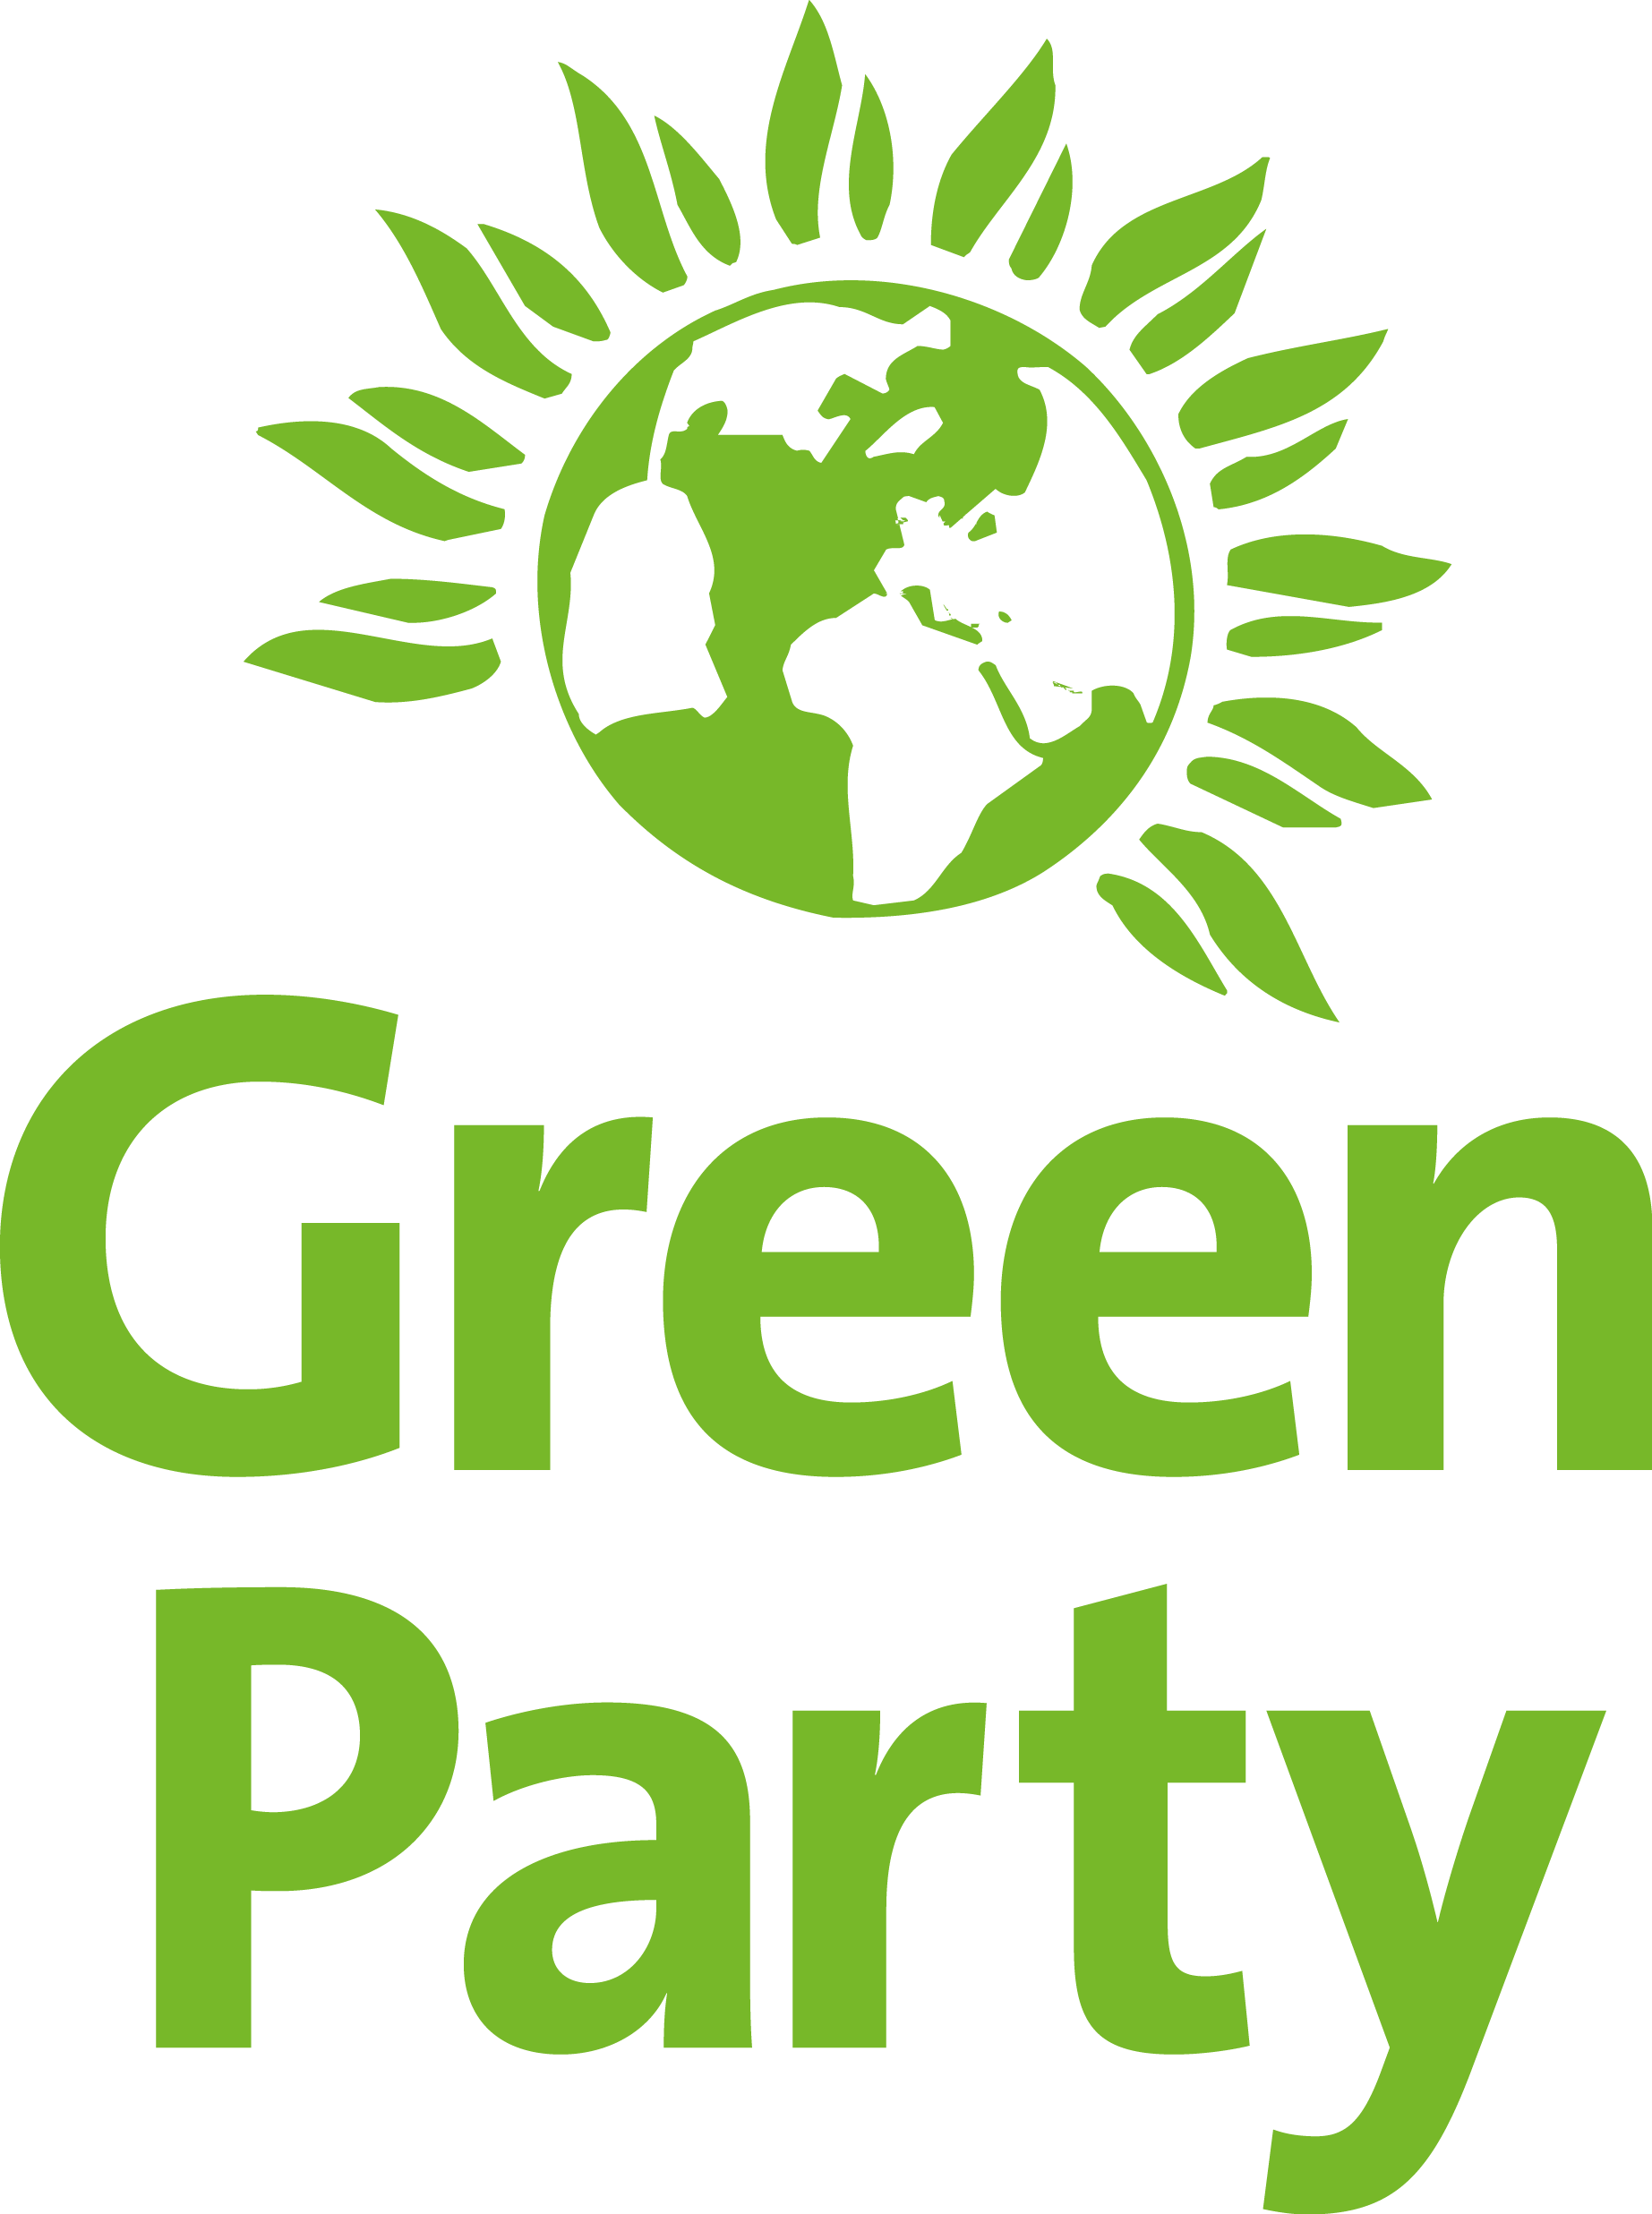 Green party logo png. Visual identity vertical on